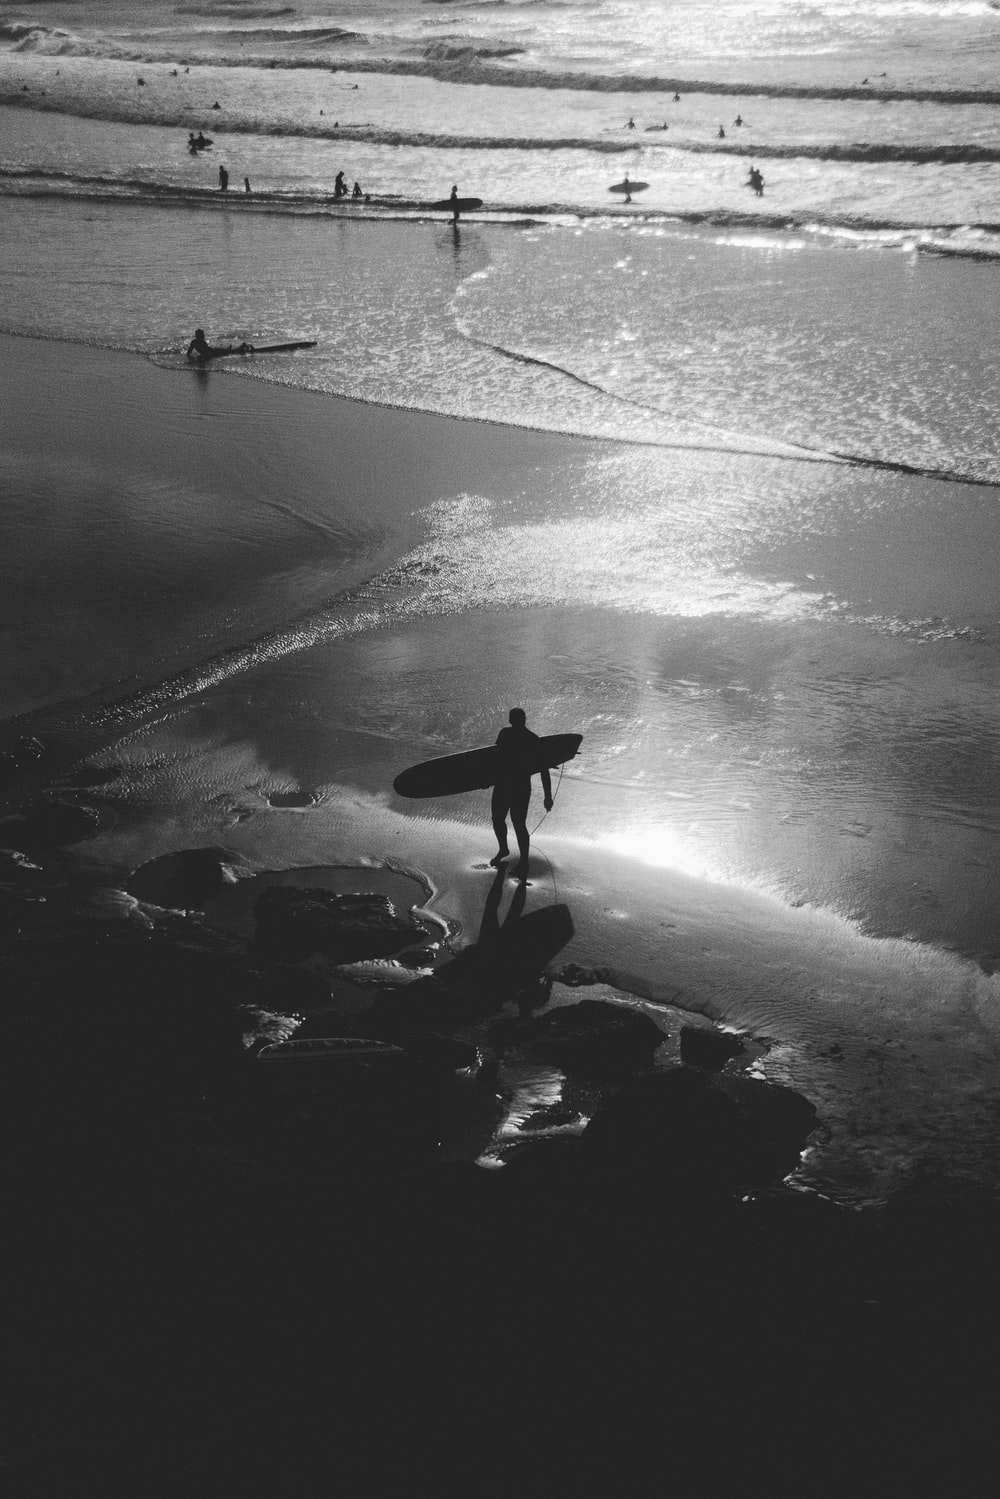 greyscale photography of person carrying surfboard on seashore